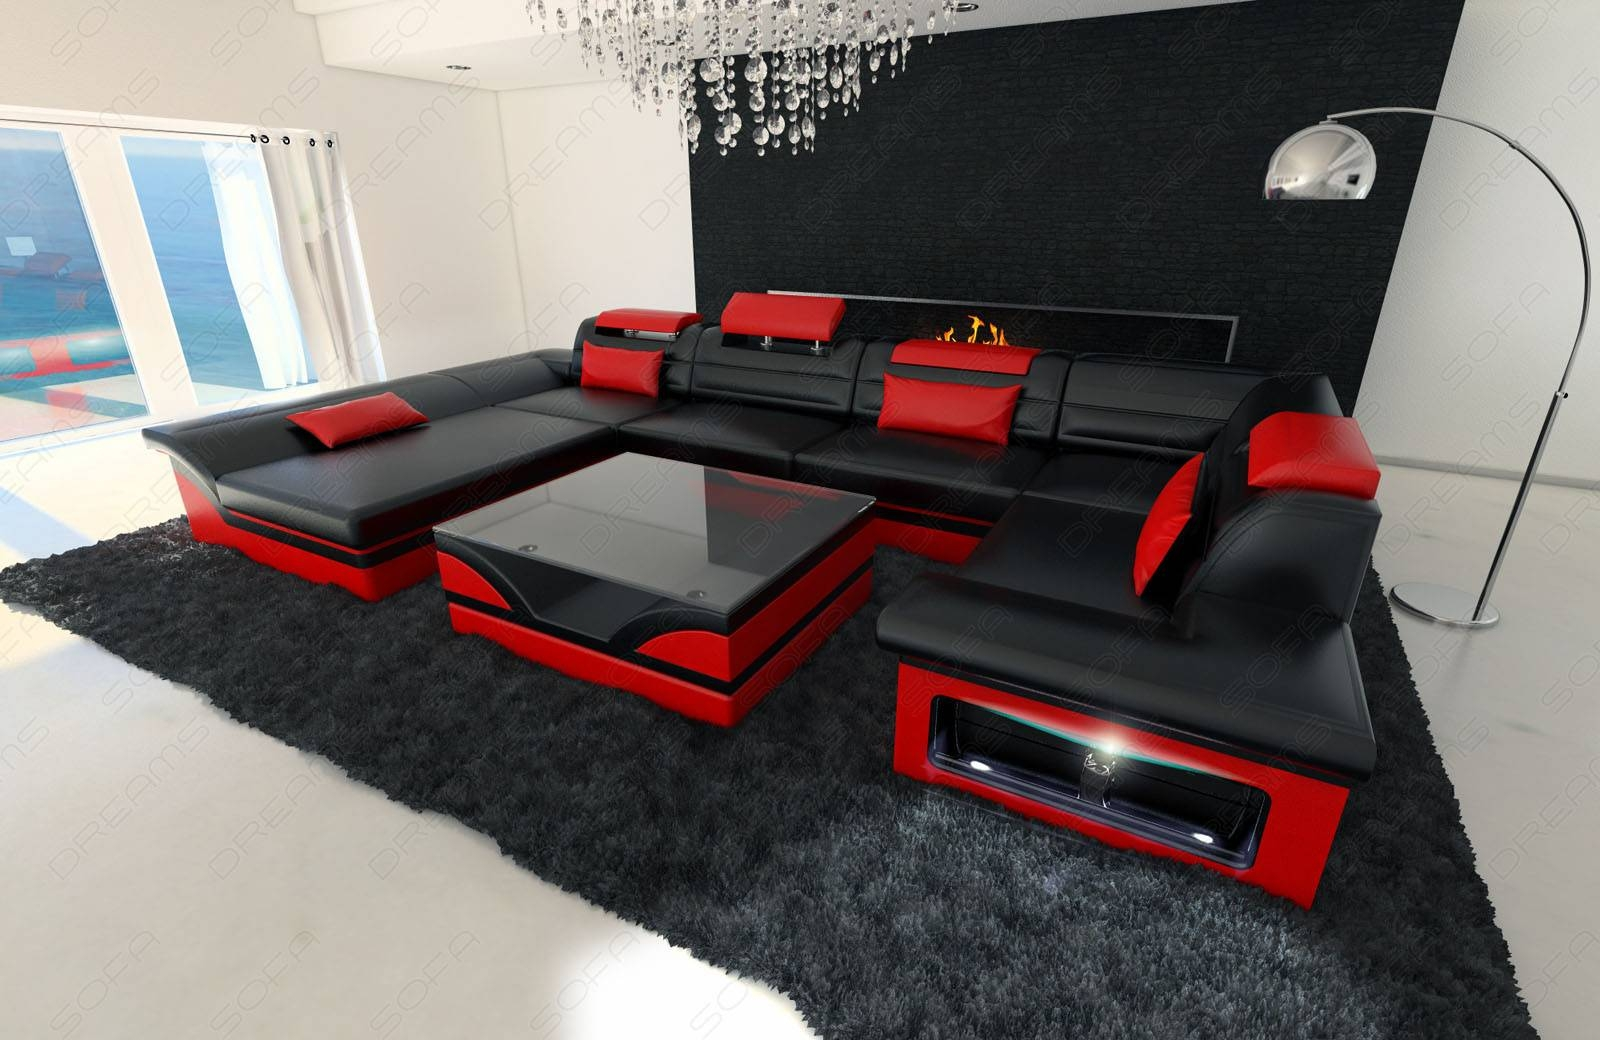 25 collection of sofa red and black. Black Bedroom Furniture Sets. Home Design Ideas